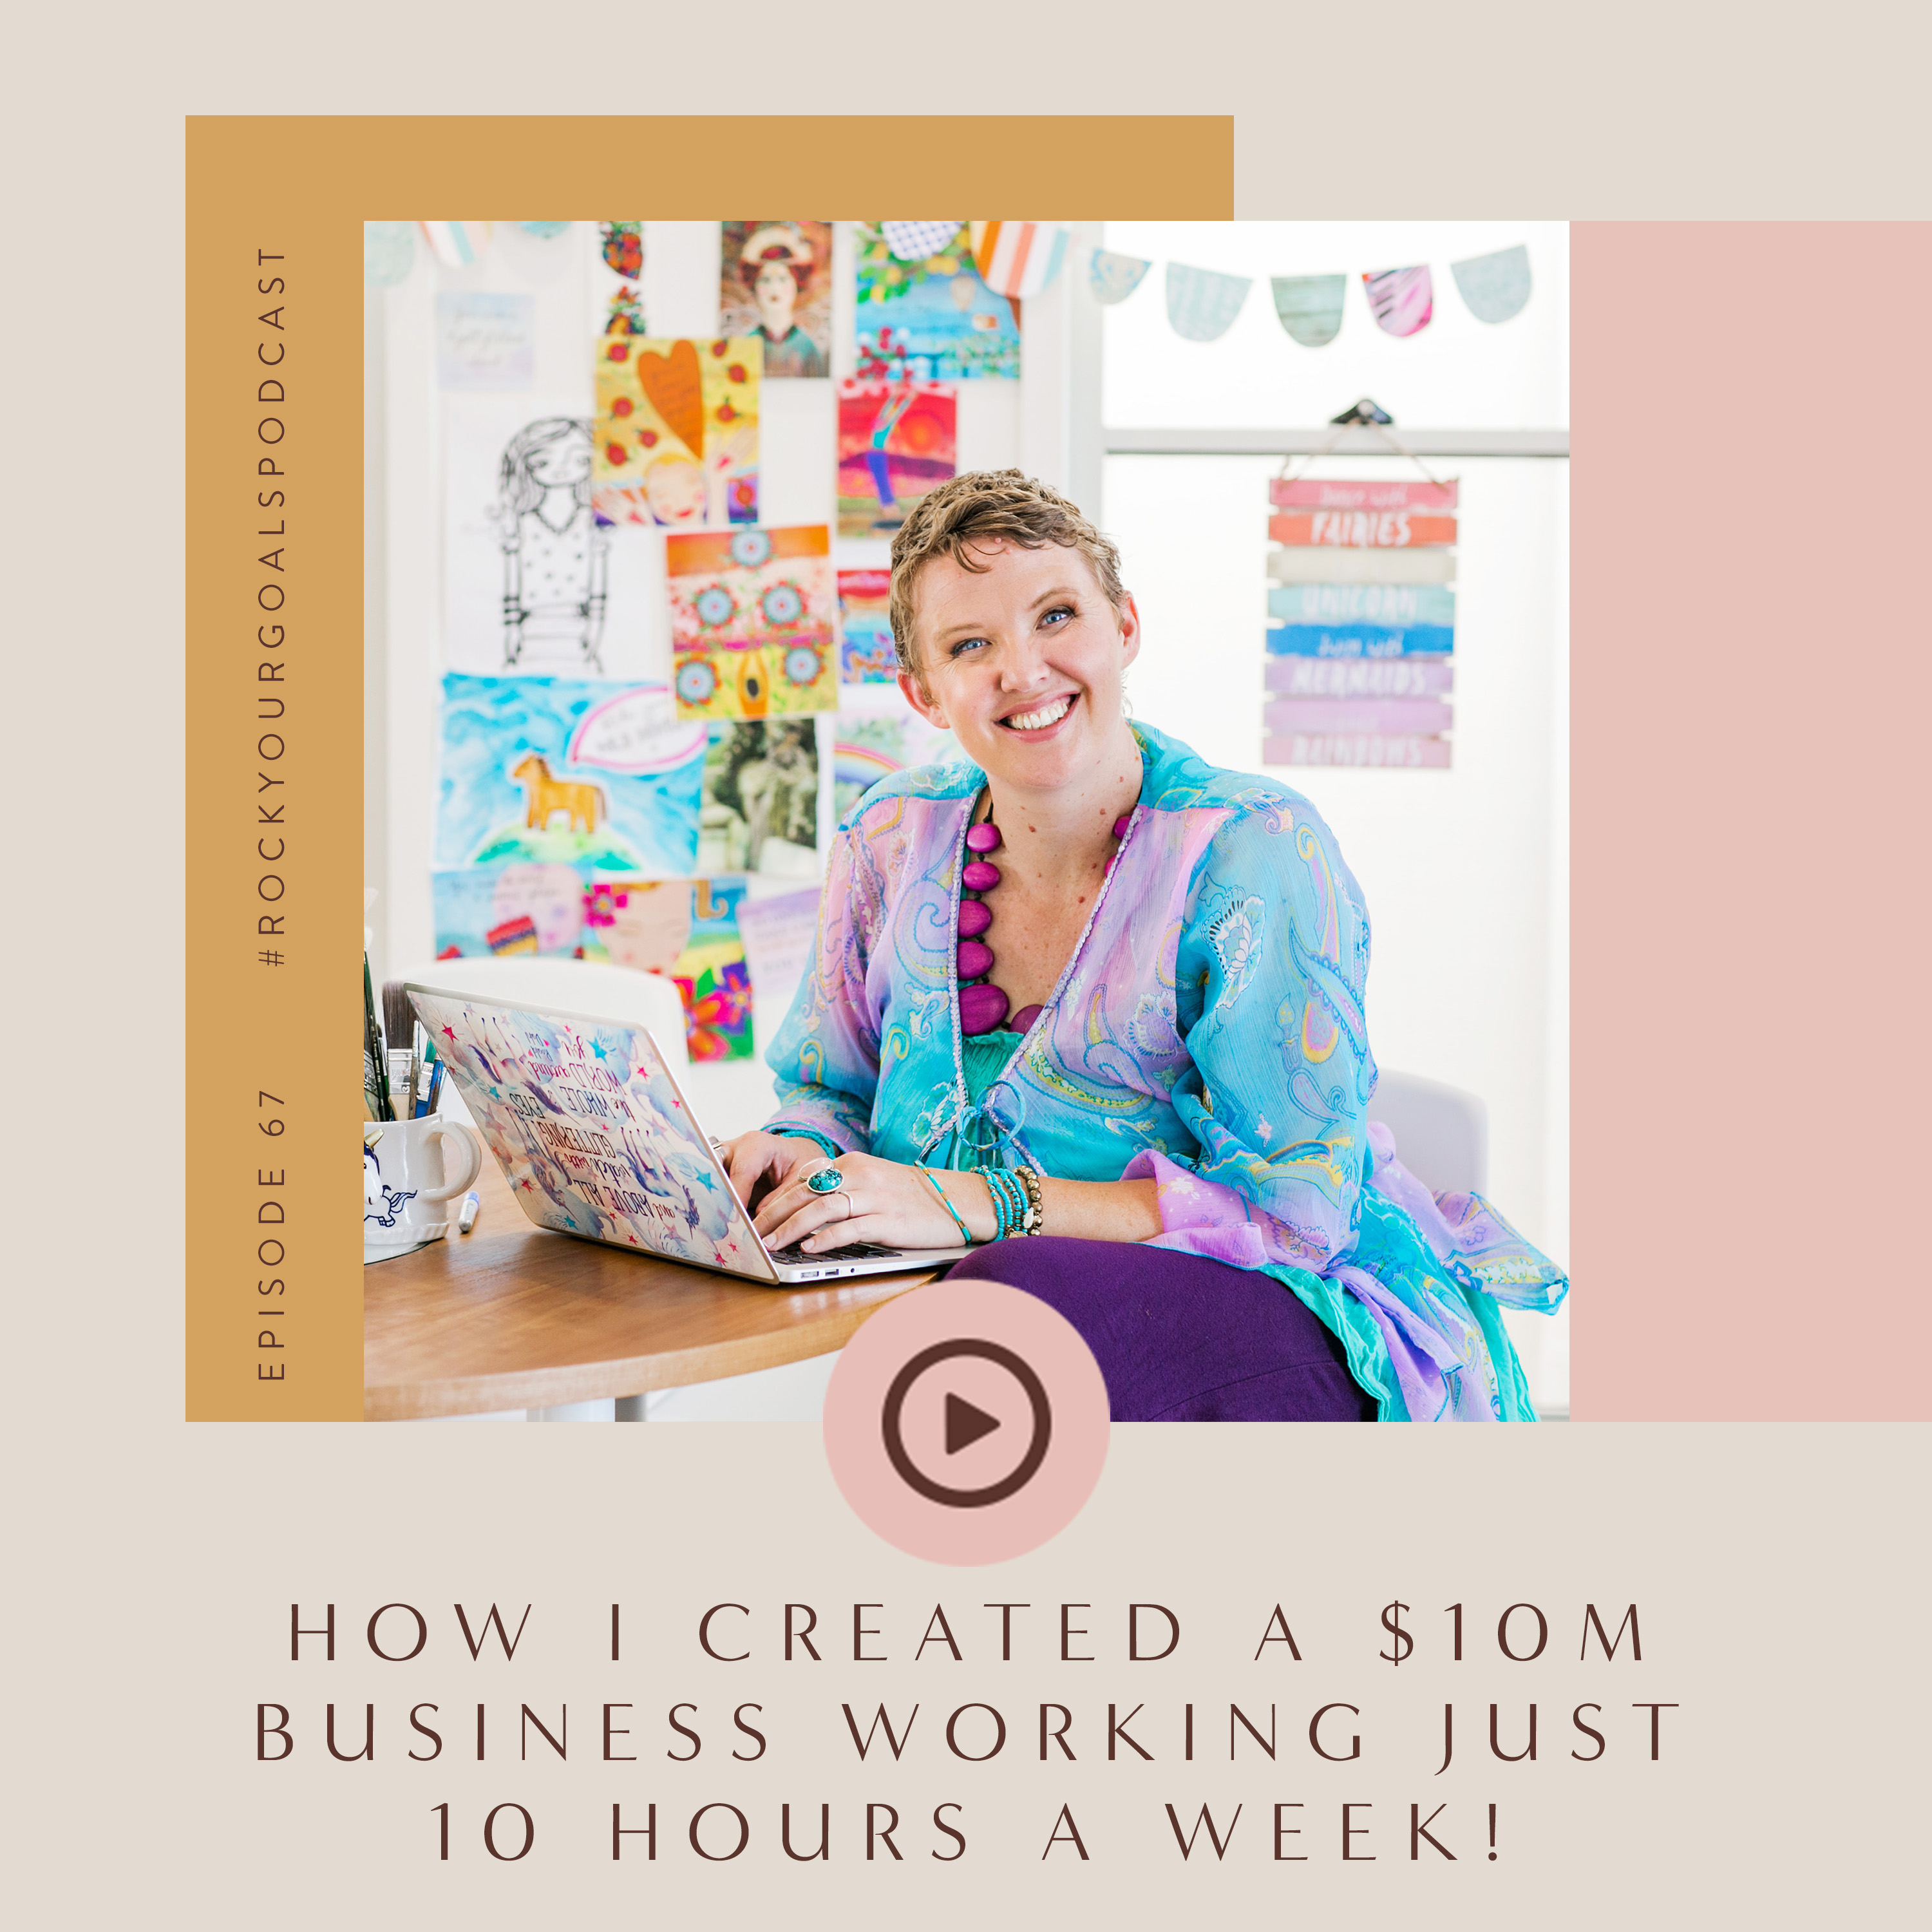 Rock Your Goals Podcast how to build a multi million dollar business with Leonie Dawson